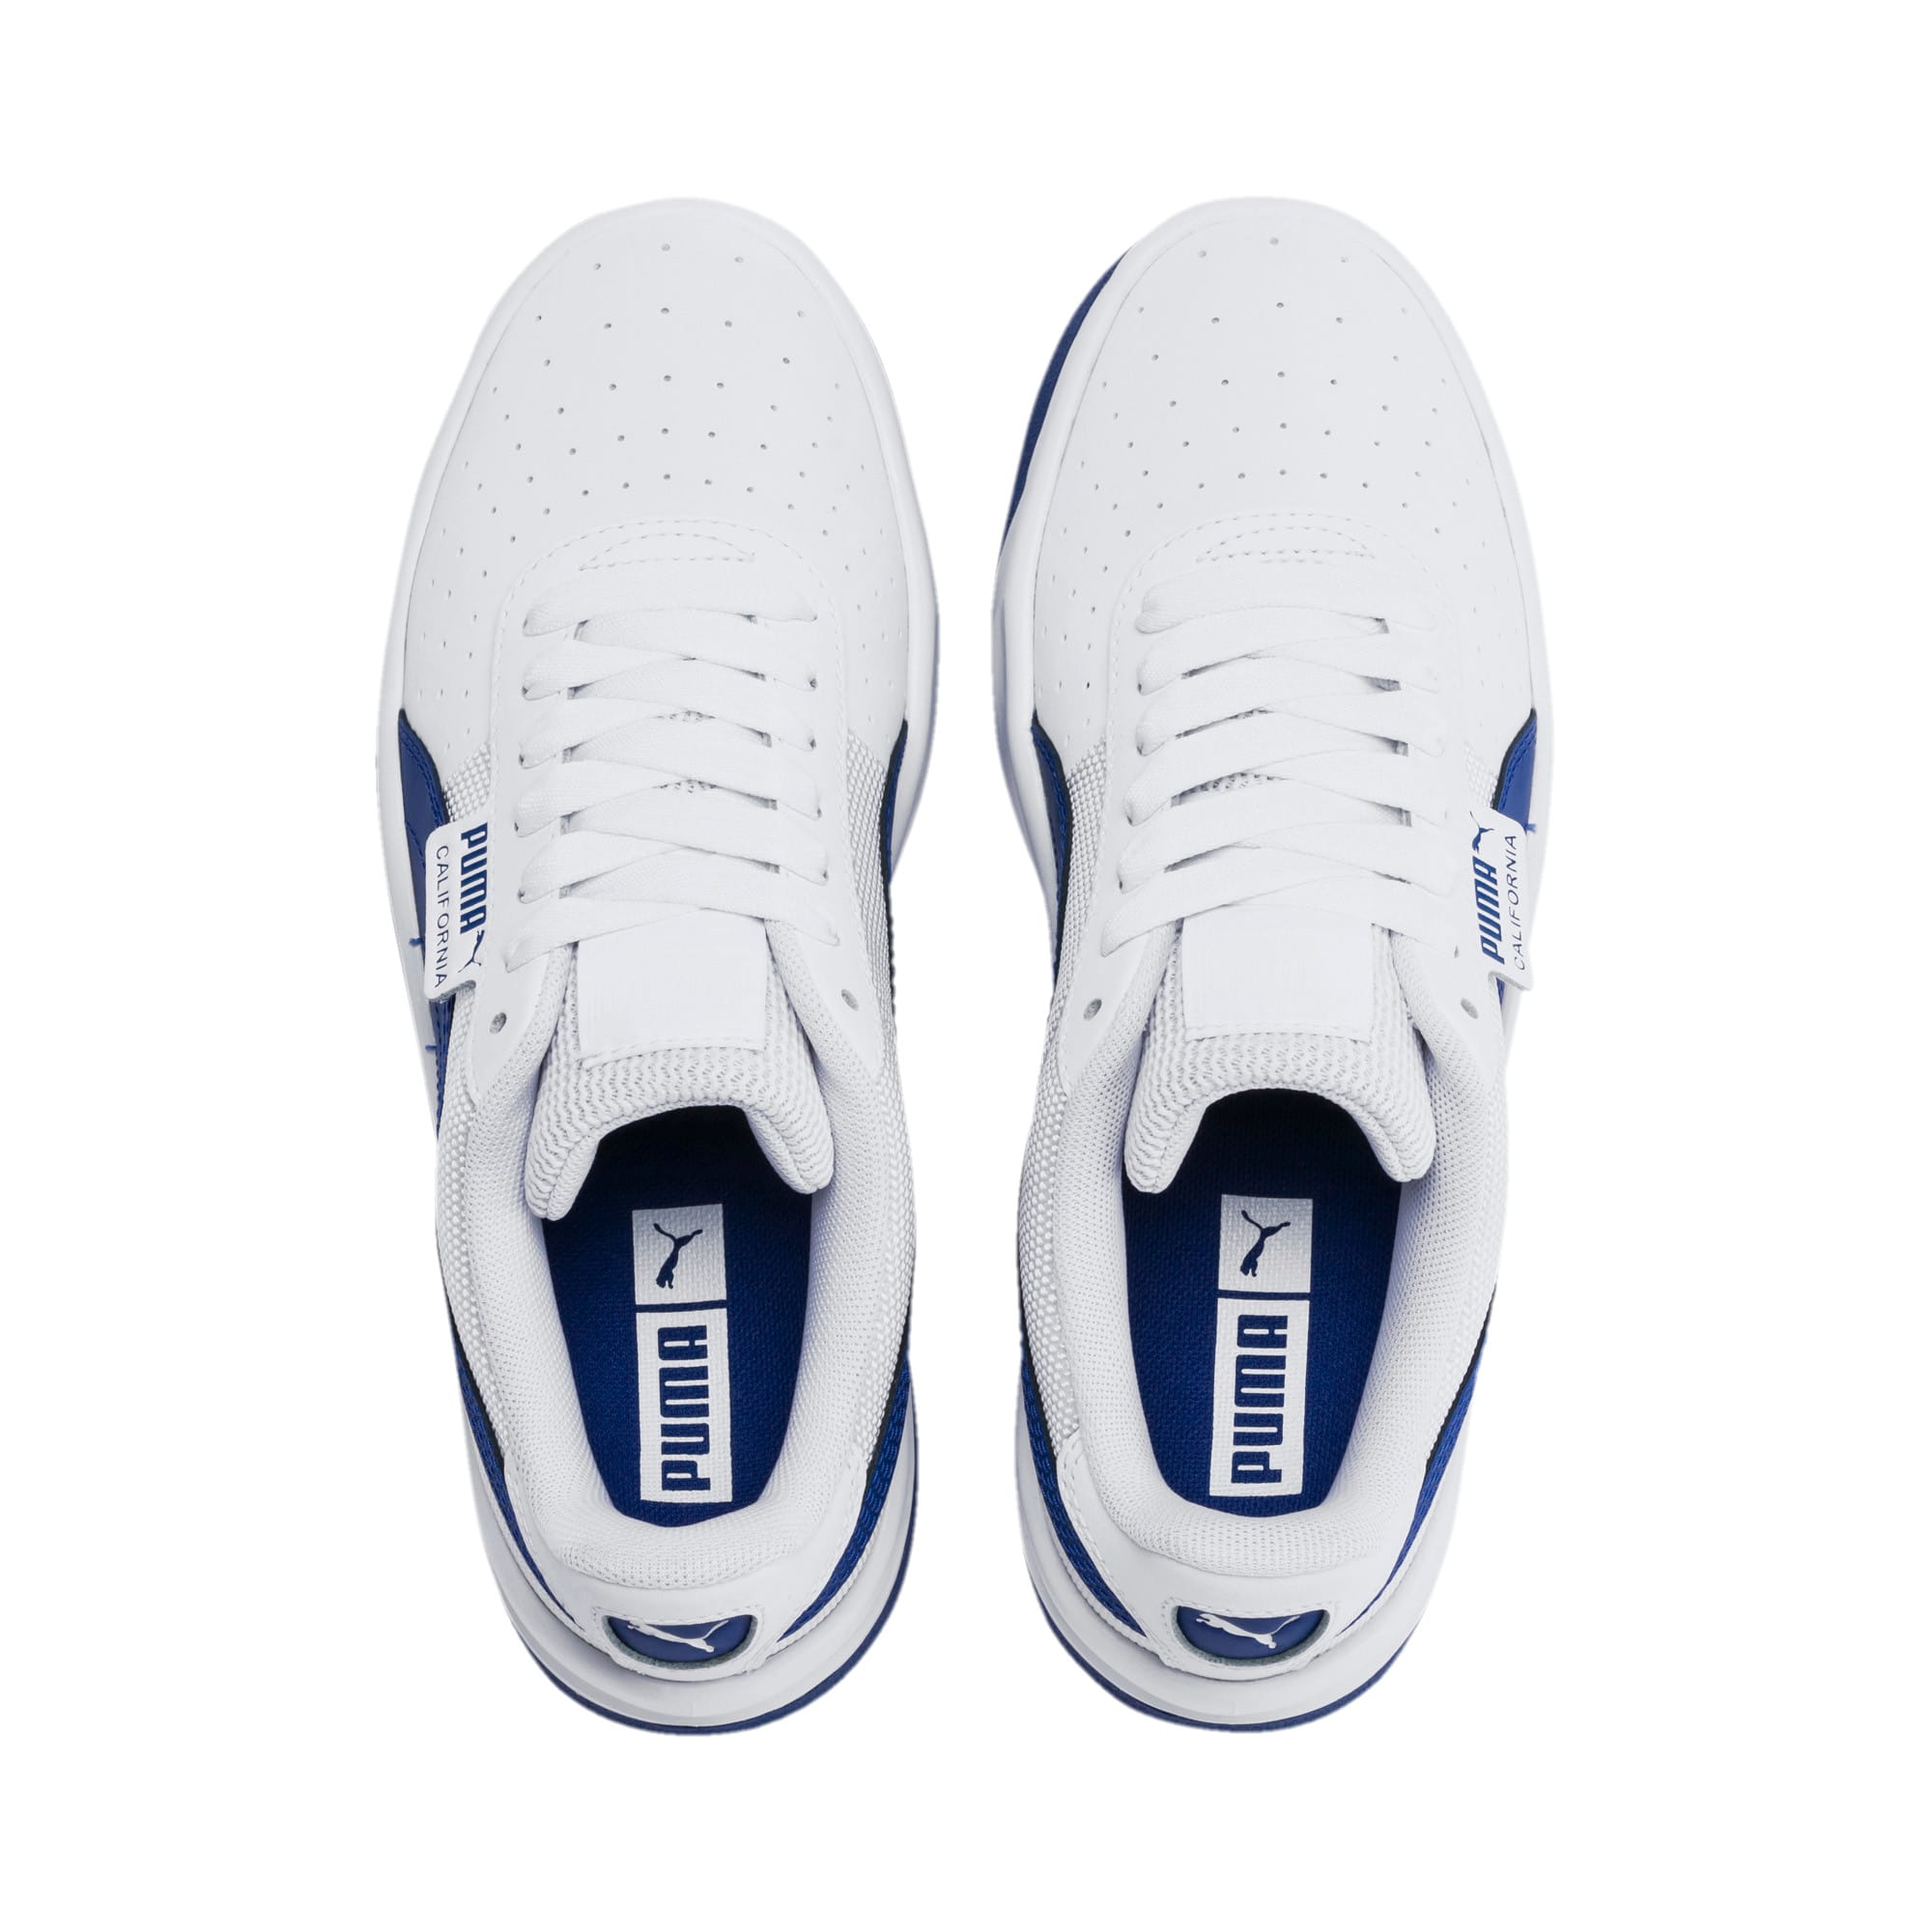 Thumbnail 6 of California Sneakers JR, Puma White-Galaxy Blue, medium